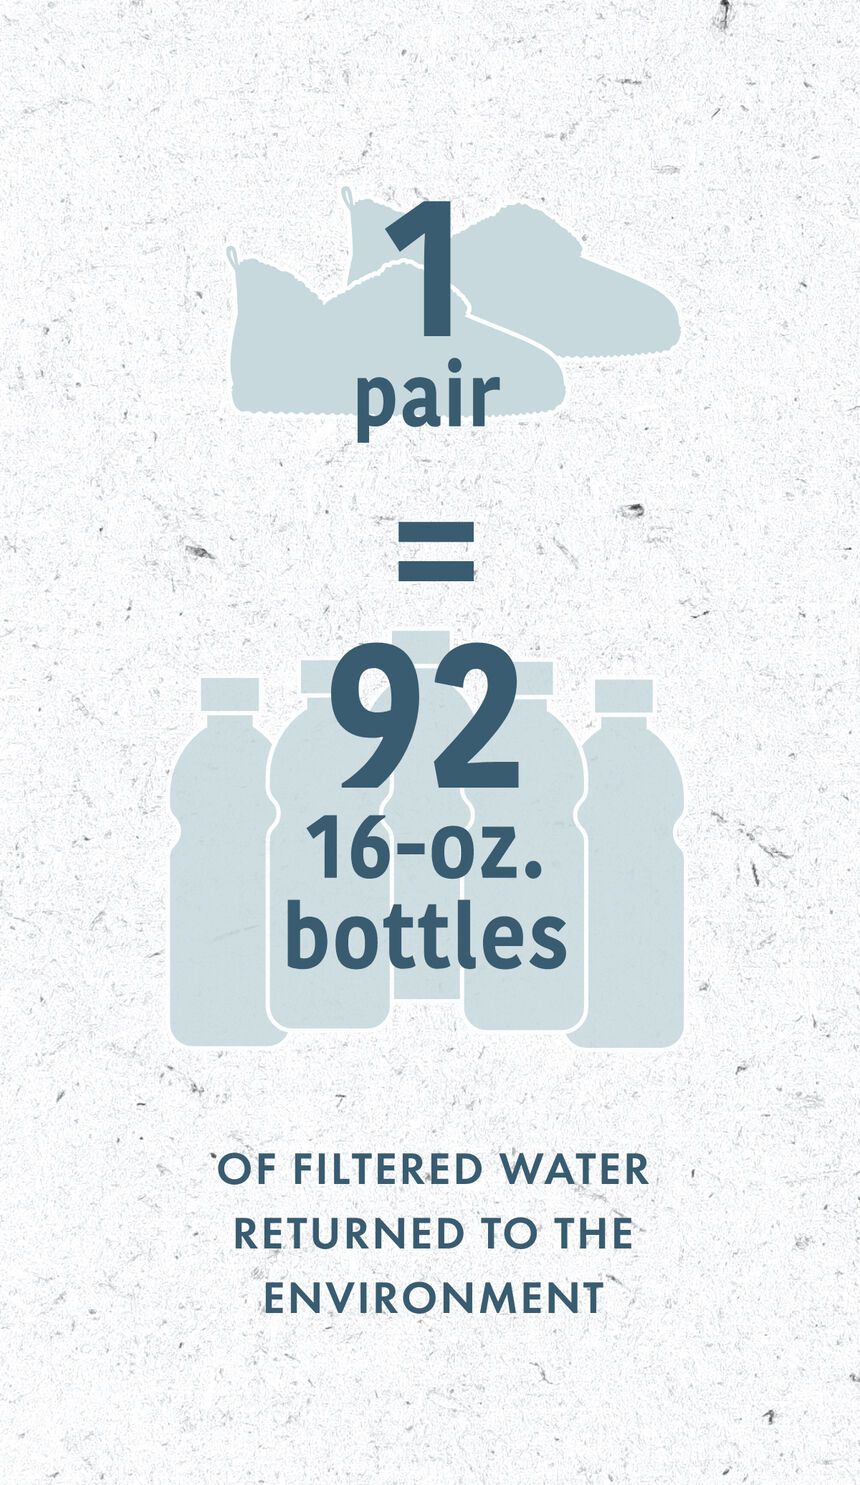 1 pair is equal to 92 16-ounce bottoles of water returned to the environment